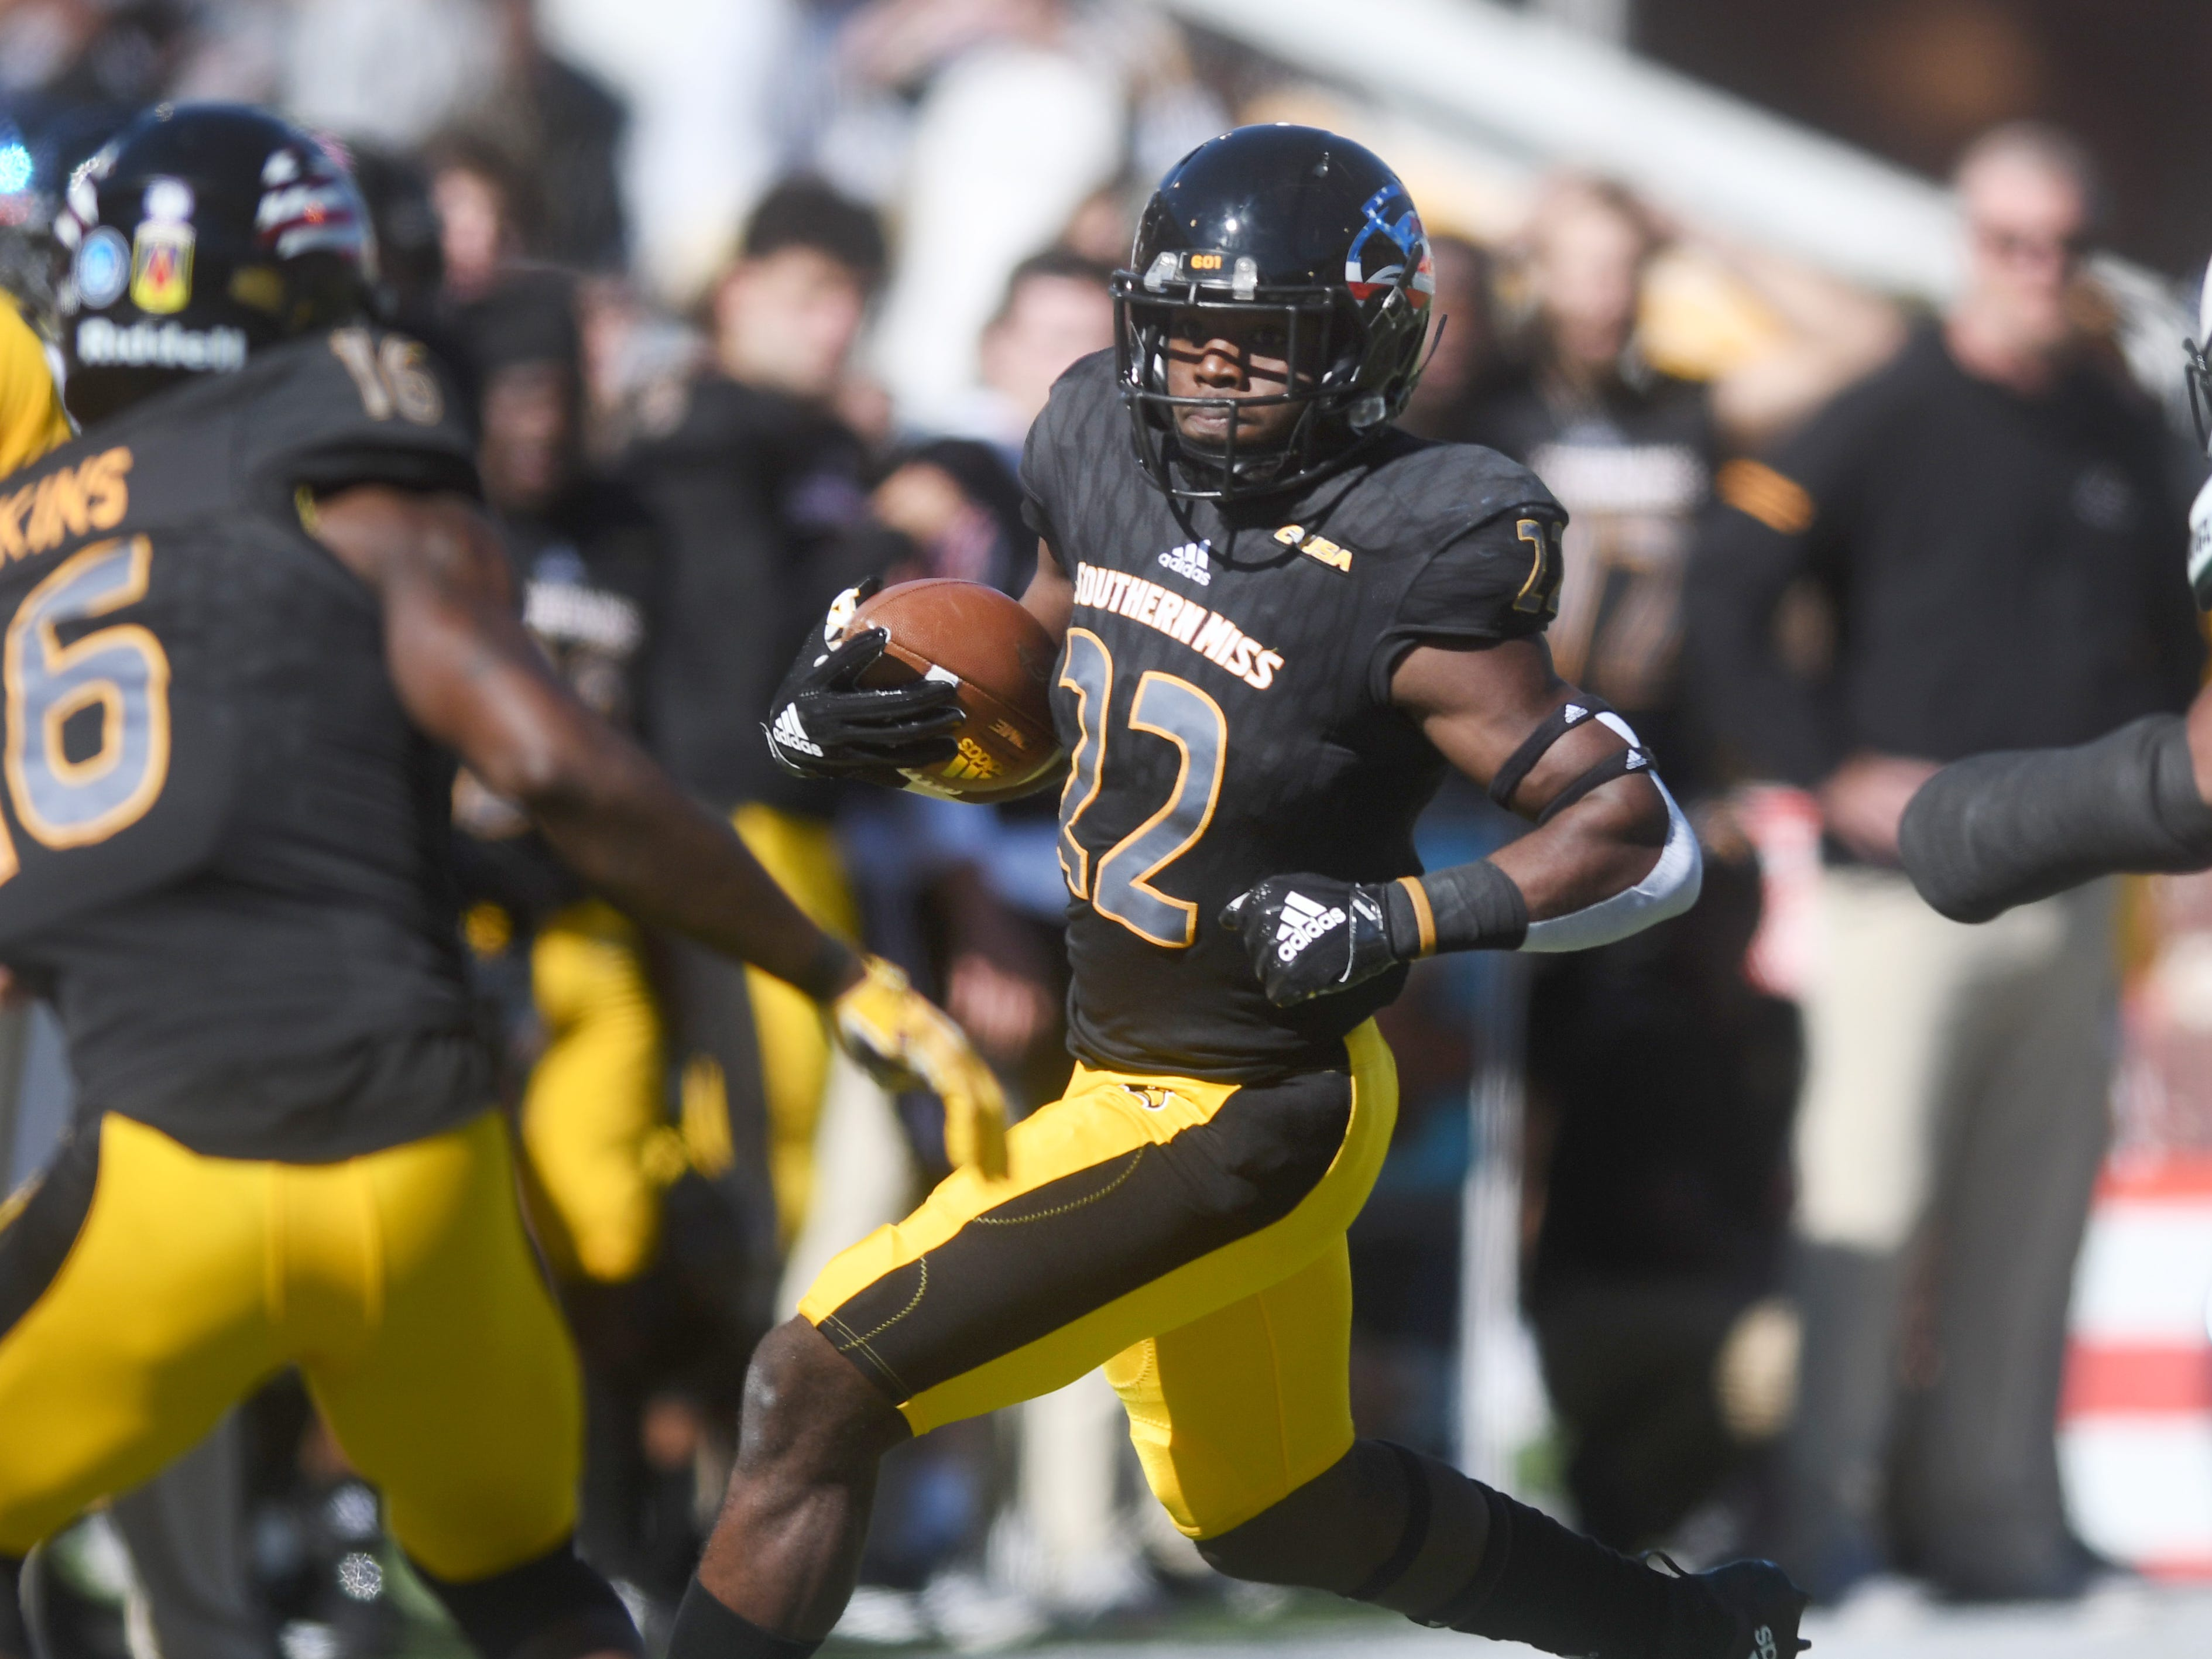 Southern Miss running back Trivenskey Mosley carries the ball down the field in a game against Marshall at M.M. Roberts Stadium on Saturday, November 3, 2018.